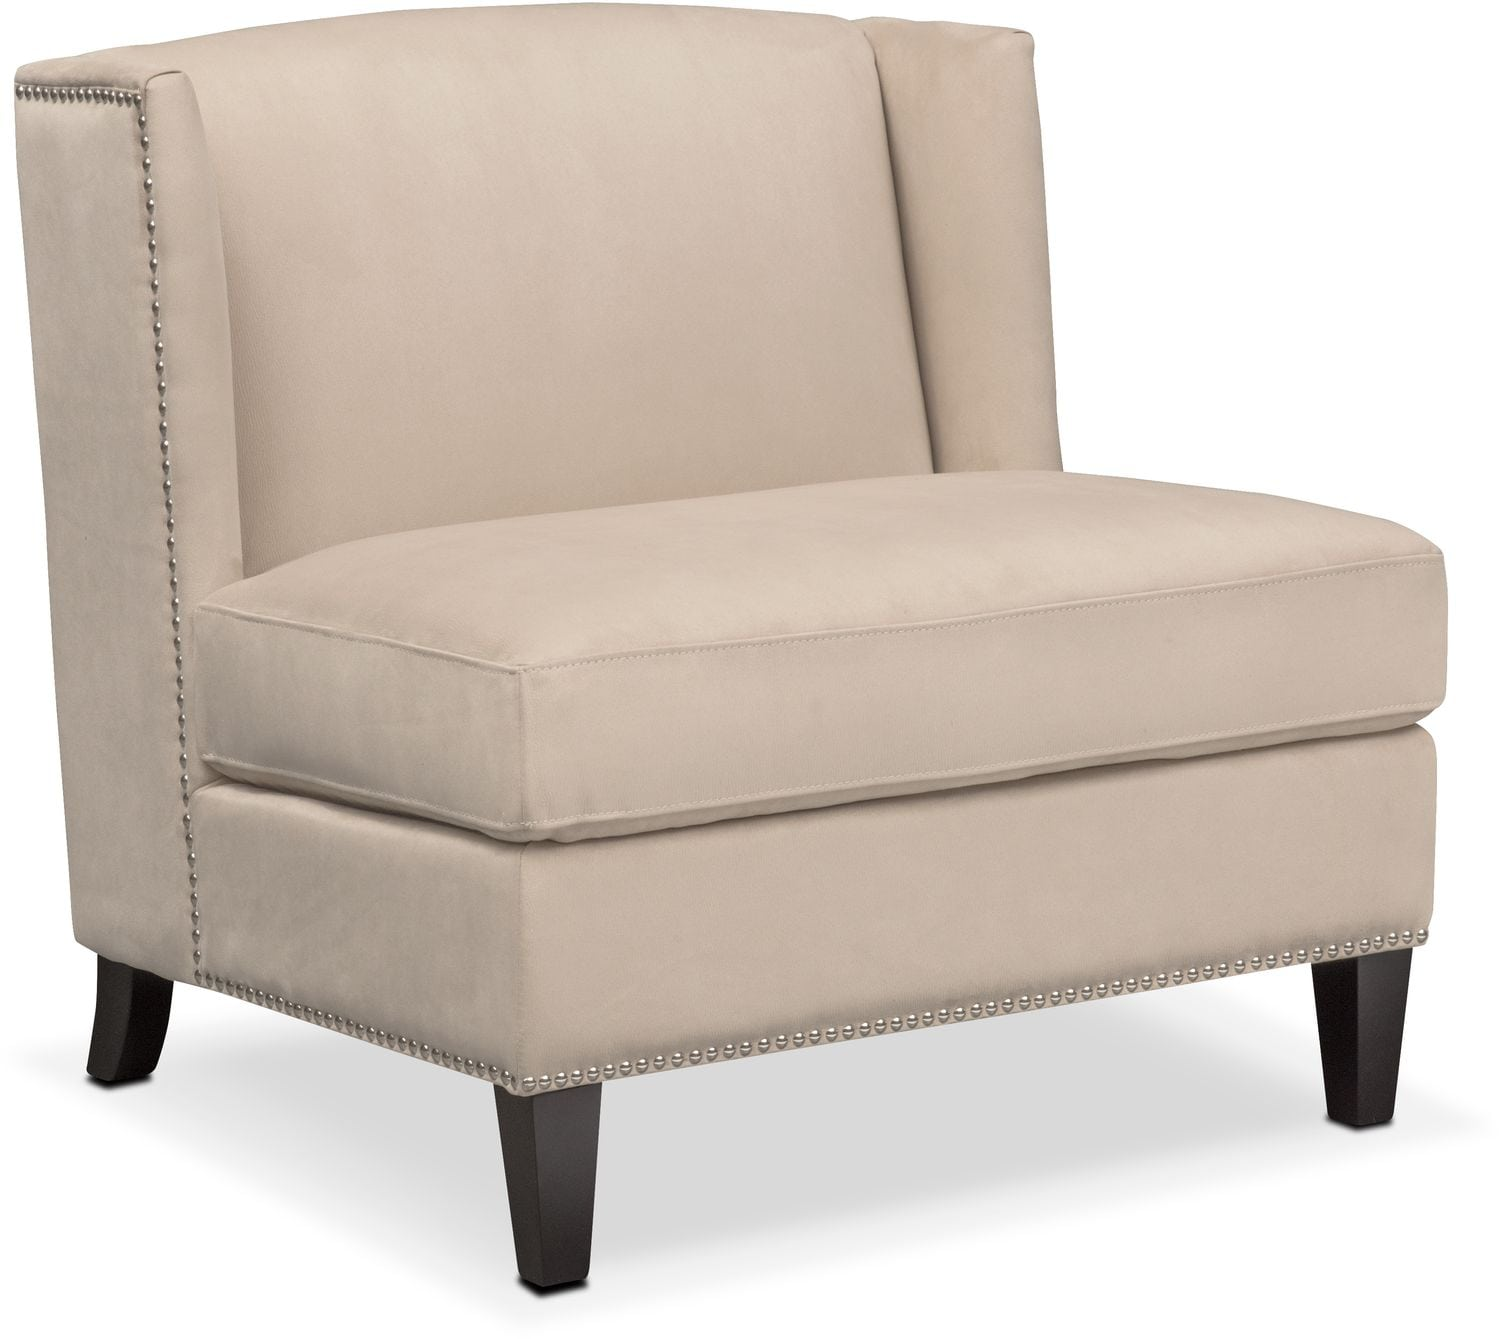 value city furniture accent chairs kitchen wood torrance chair and mattresses living room